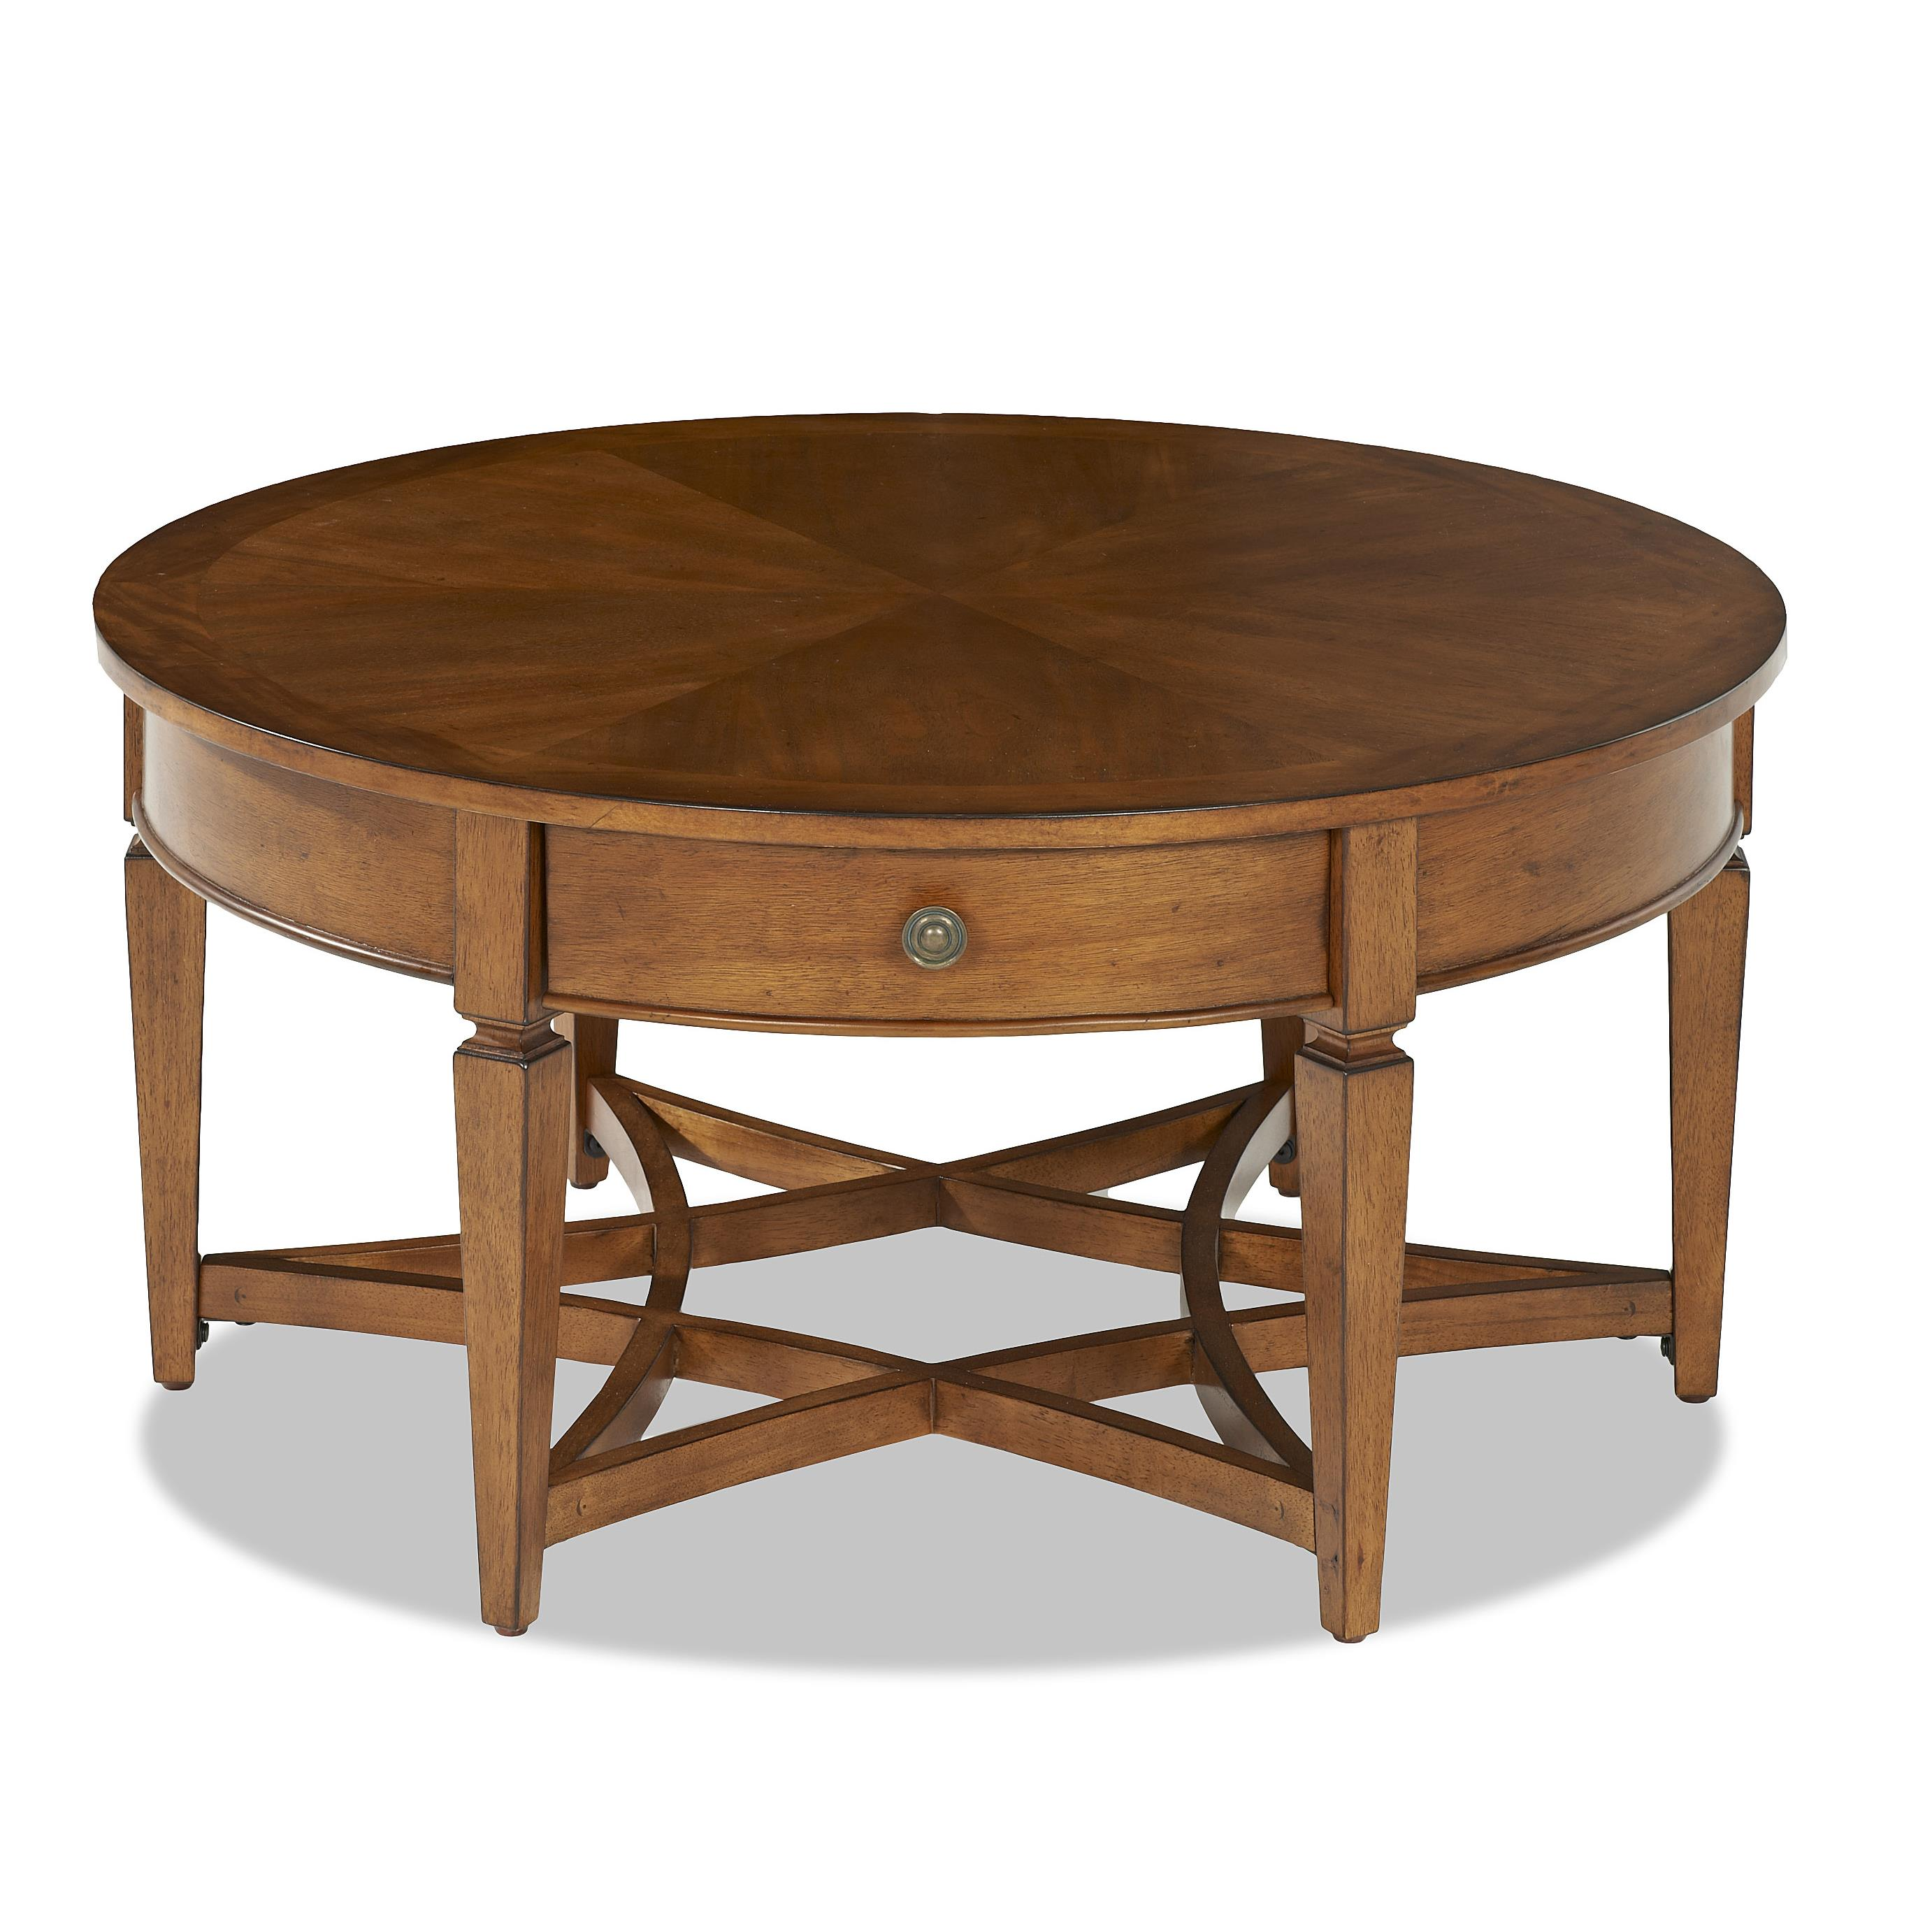 Lpd Furniture Accent White Coffee Table: Worthington Round Cocktail Table With 1 Drawer